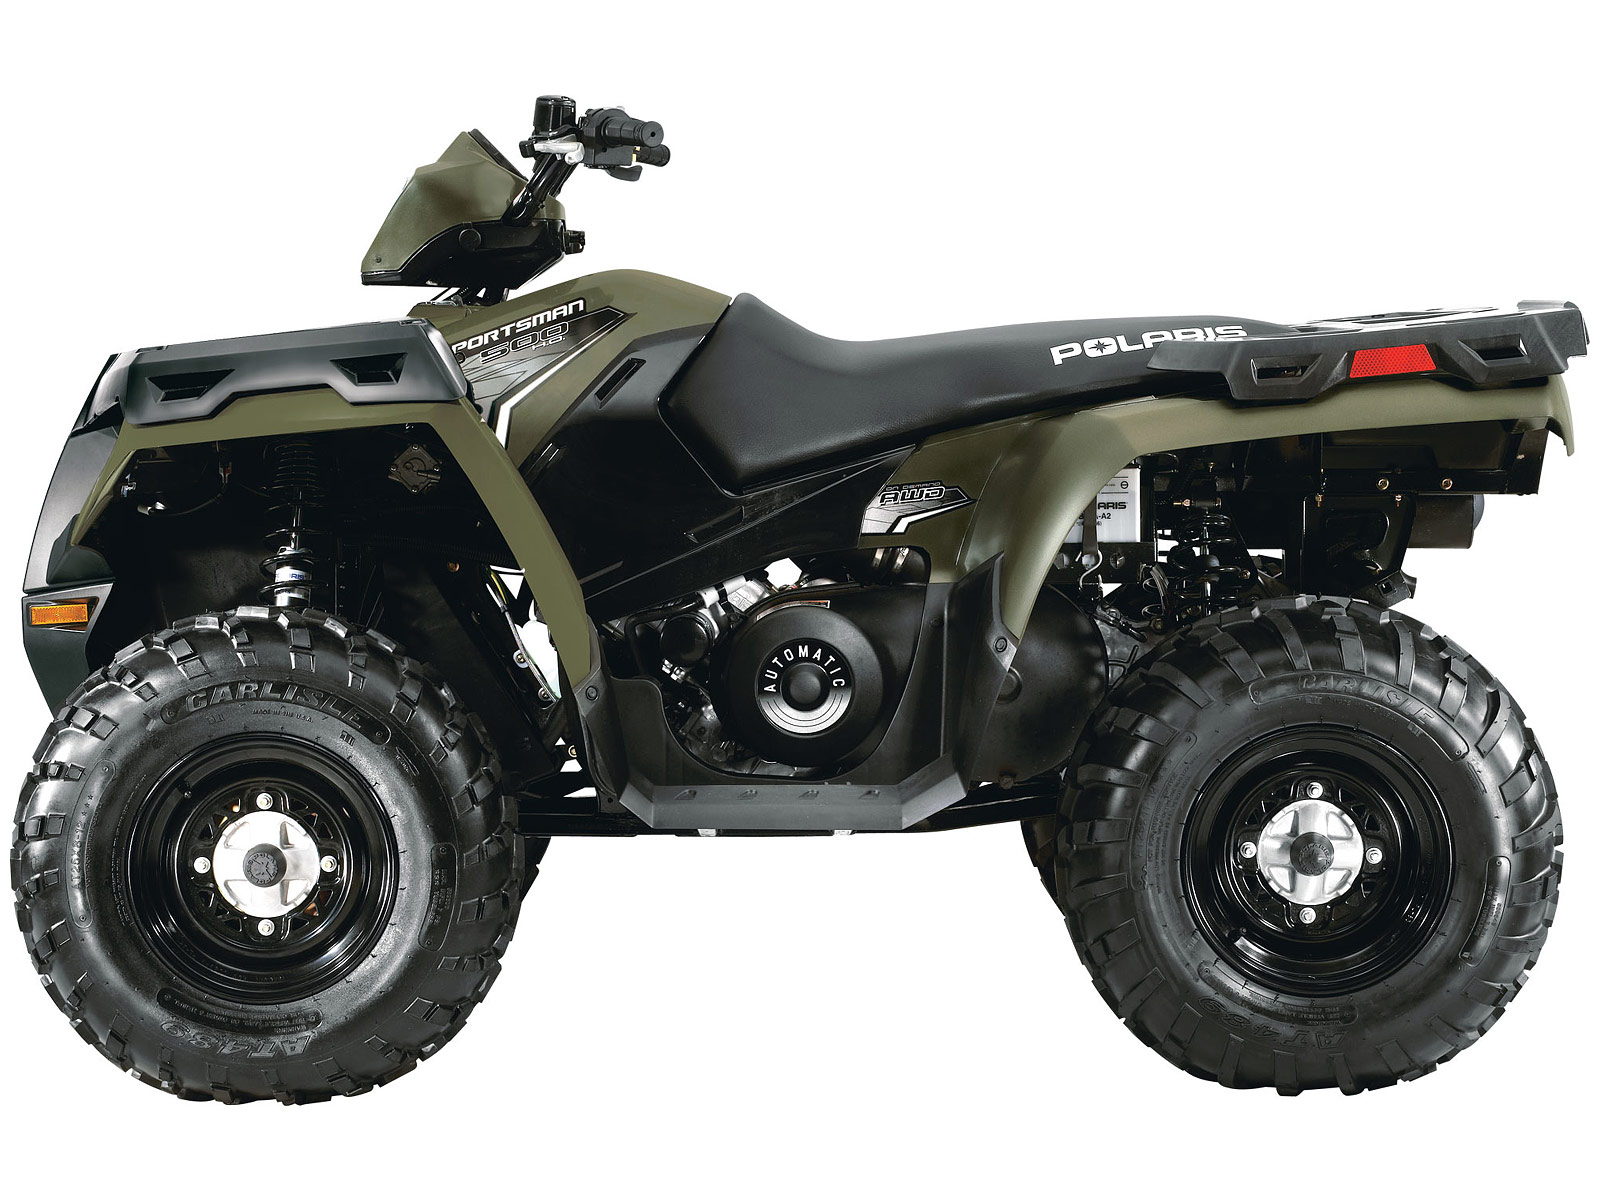 2012 polaris sportsman 500ho atv insurance information. Black Bedroom Furniture Sets. Home Design Ideas